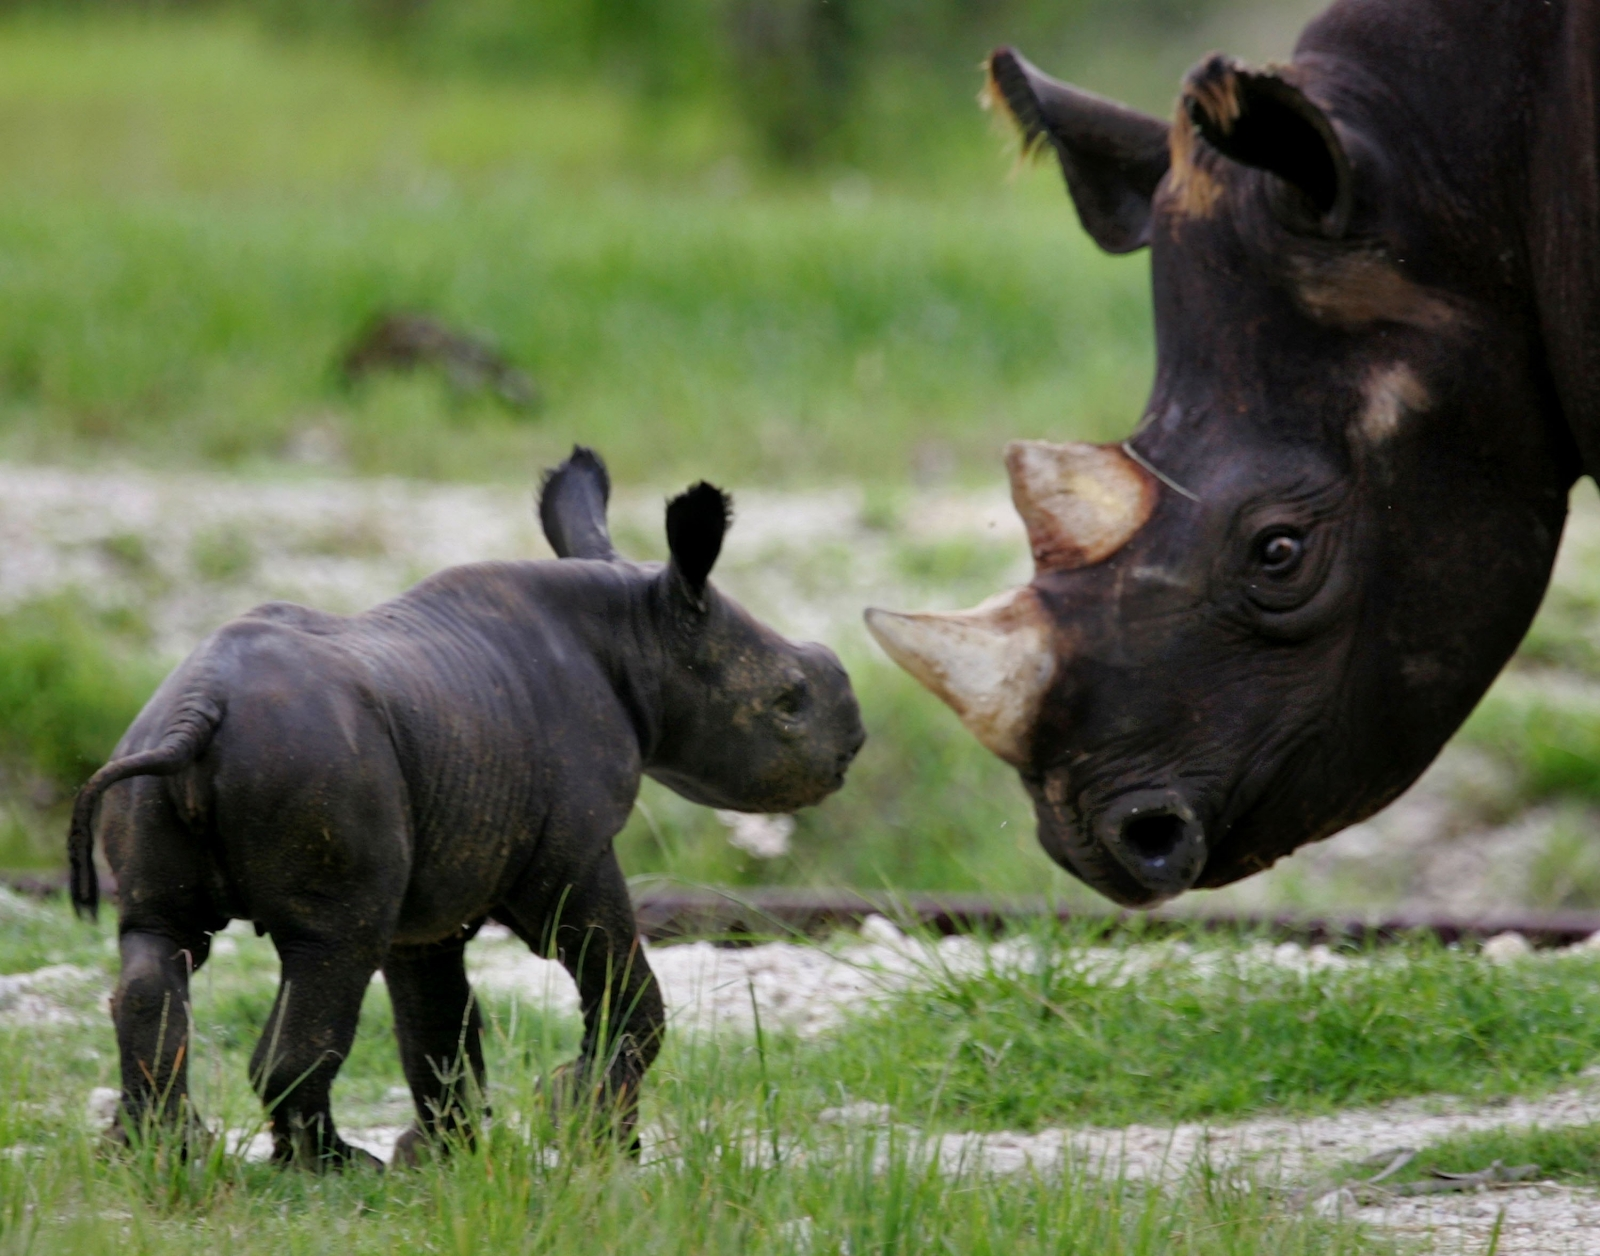 The methods to protect the black rhino populations from poaching